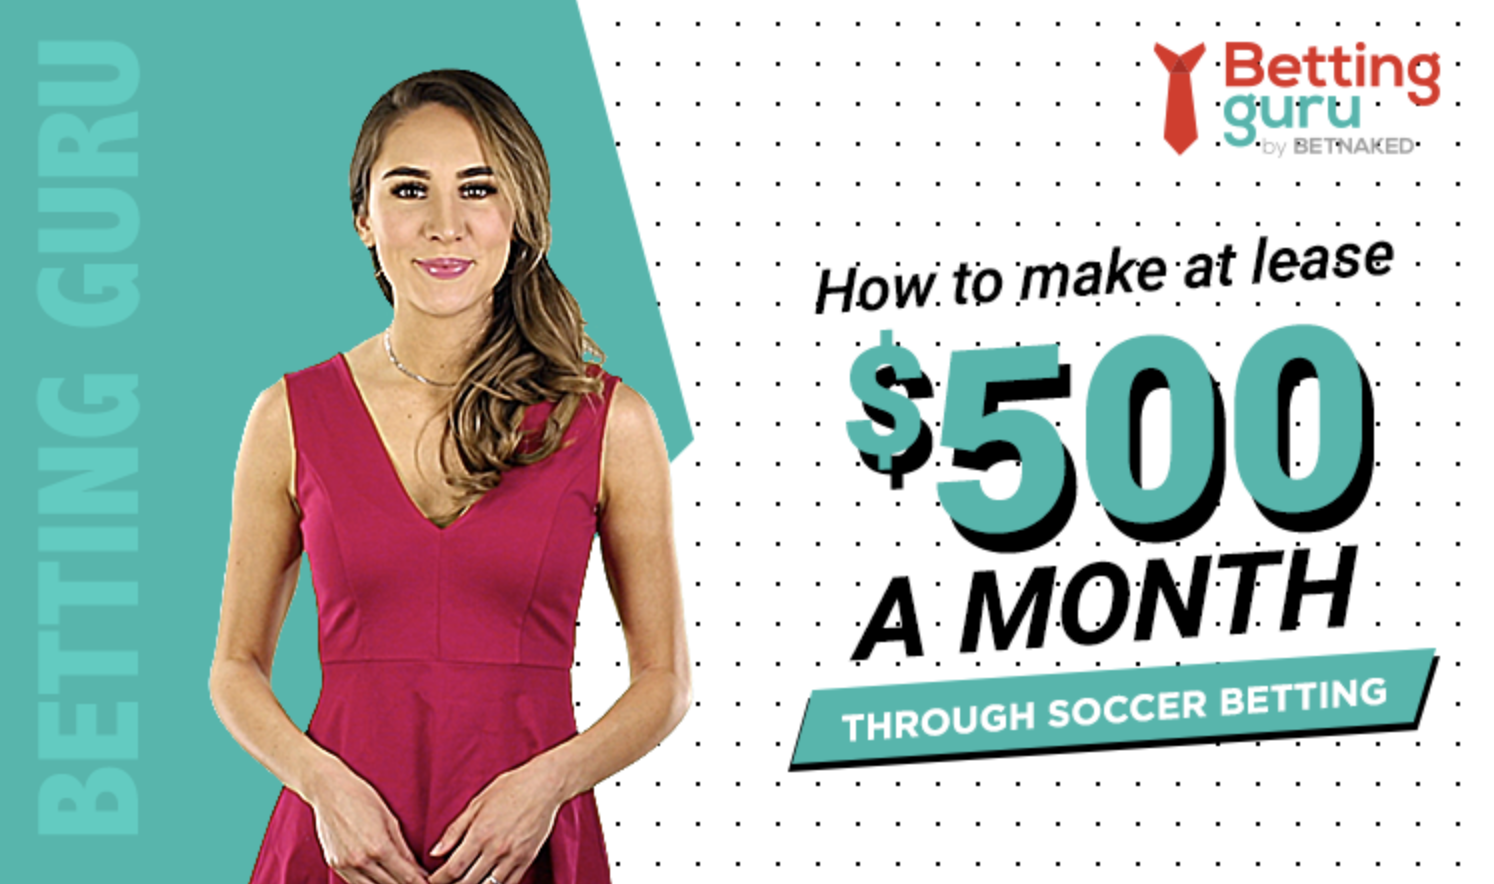 How to make at least 500 a month through soccer betting blog featured image